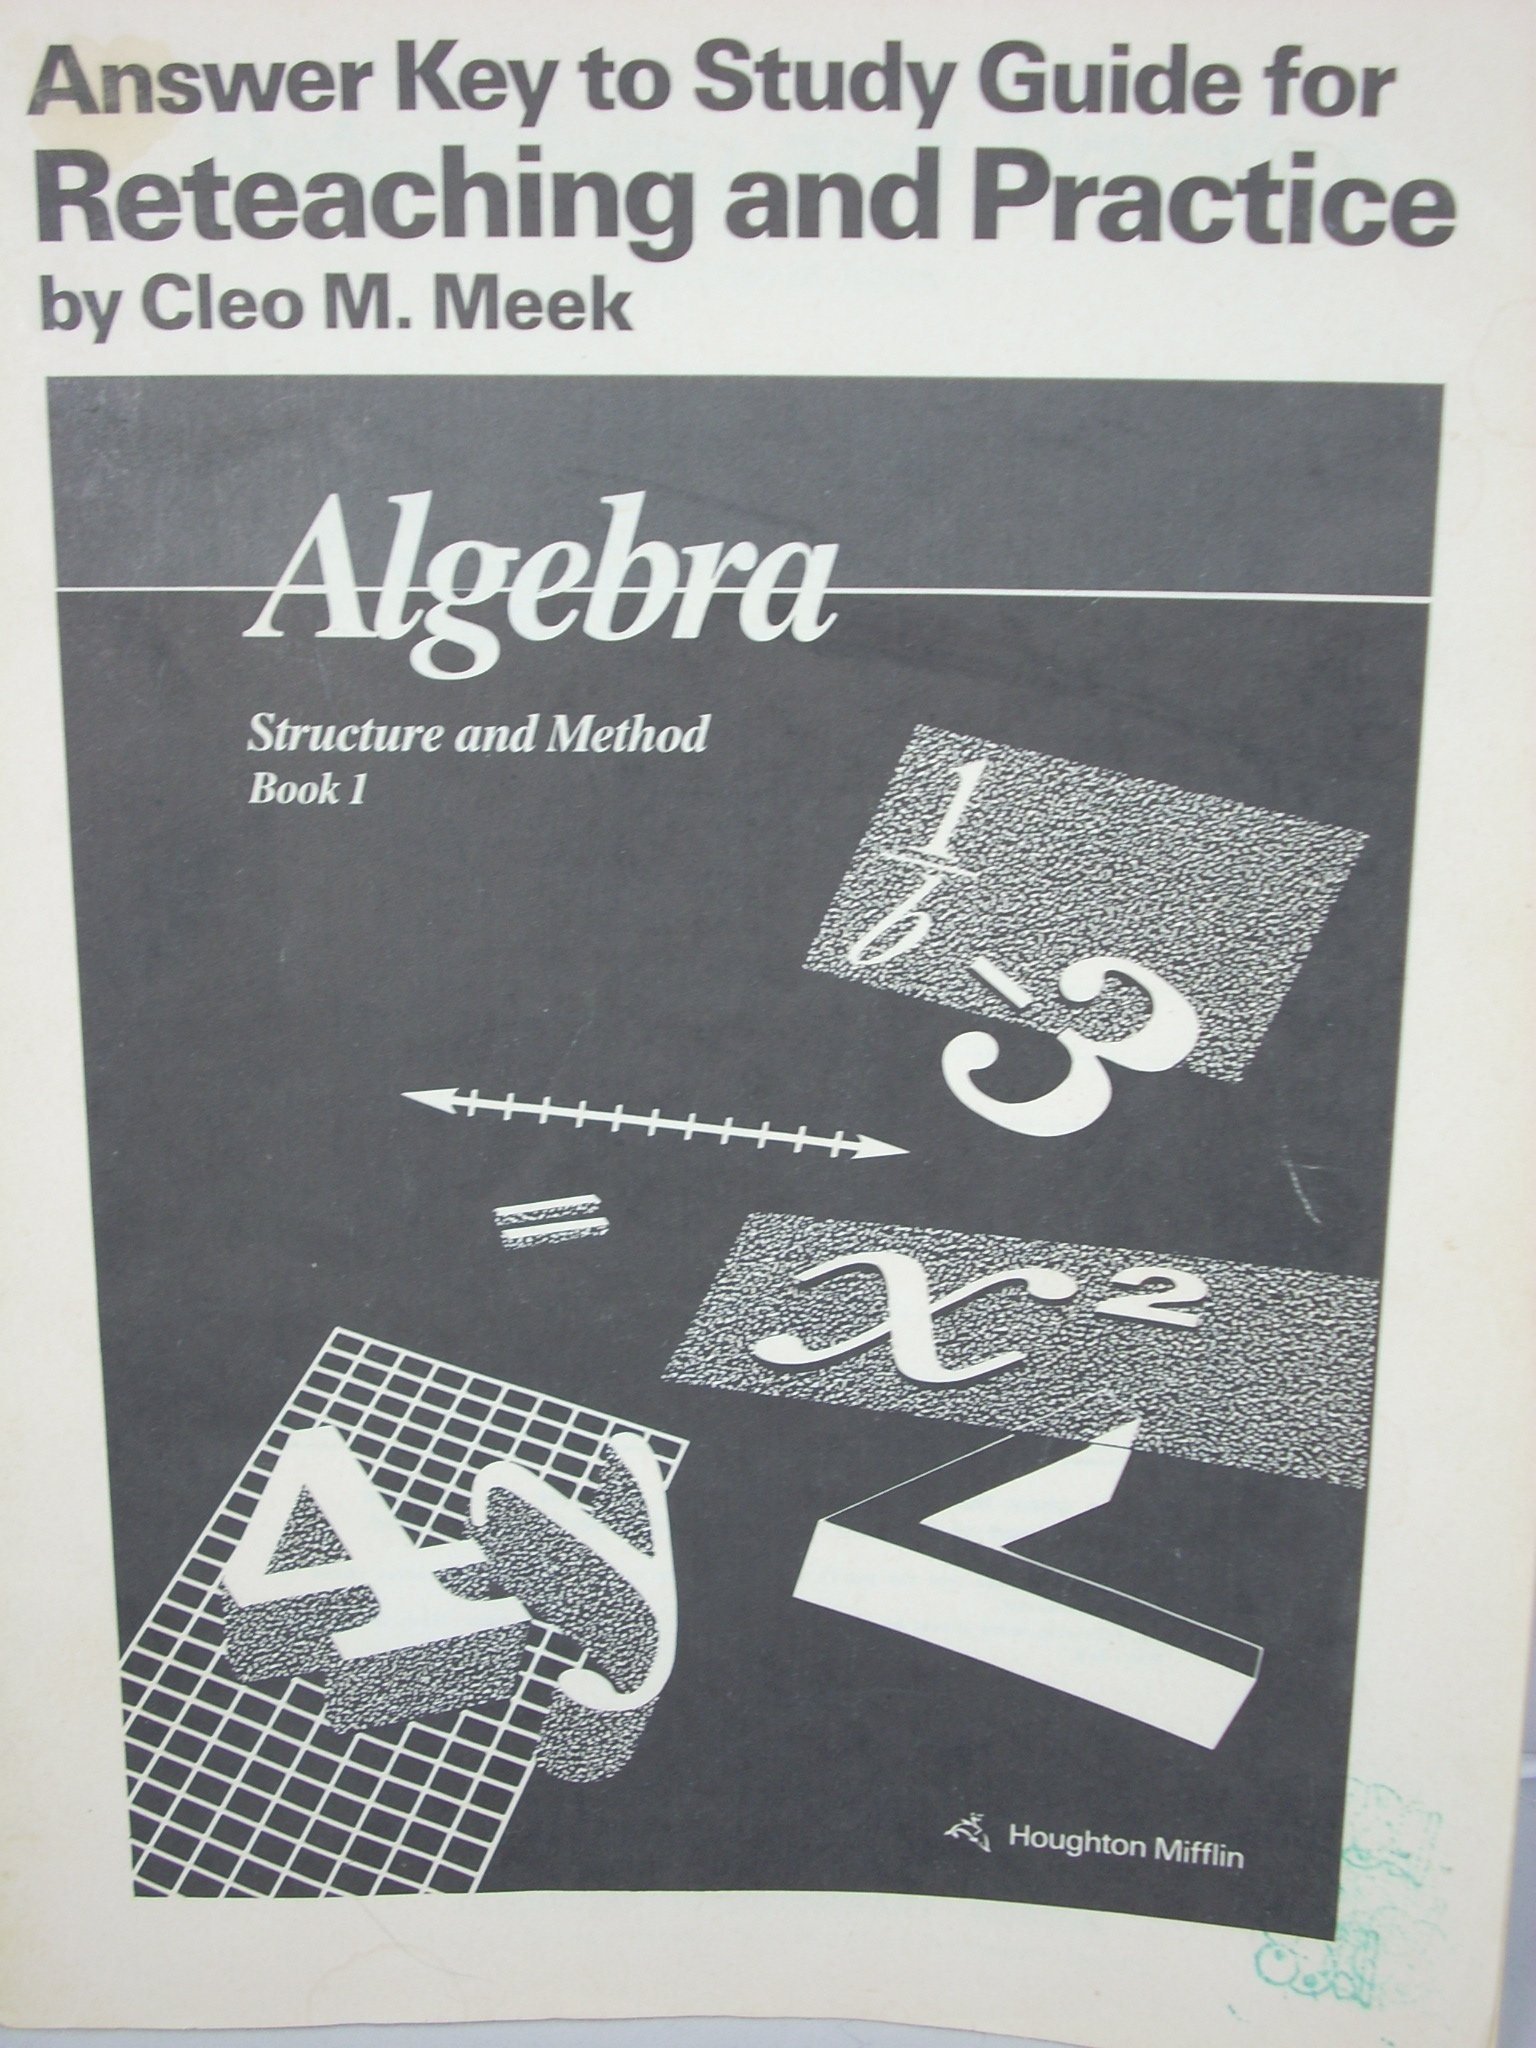 Amazon answer key to study guide for reteaching and practice amazon answer key to study guide for reteaching and practice algebra structure and method book 1 9780395470541 cleo m meek books fandeluxe Image collections